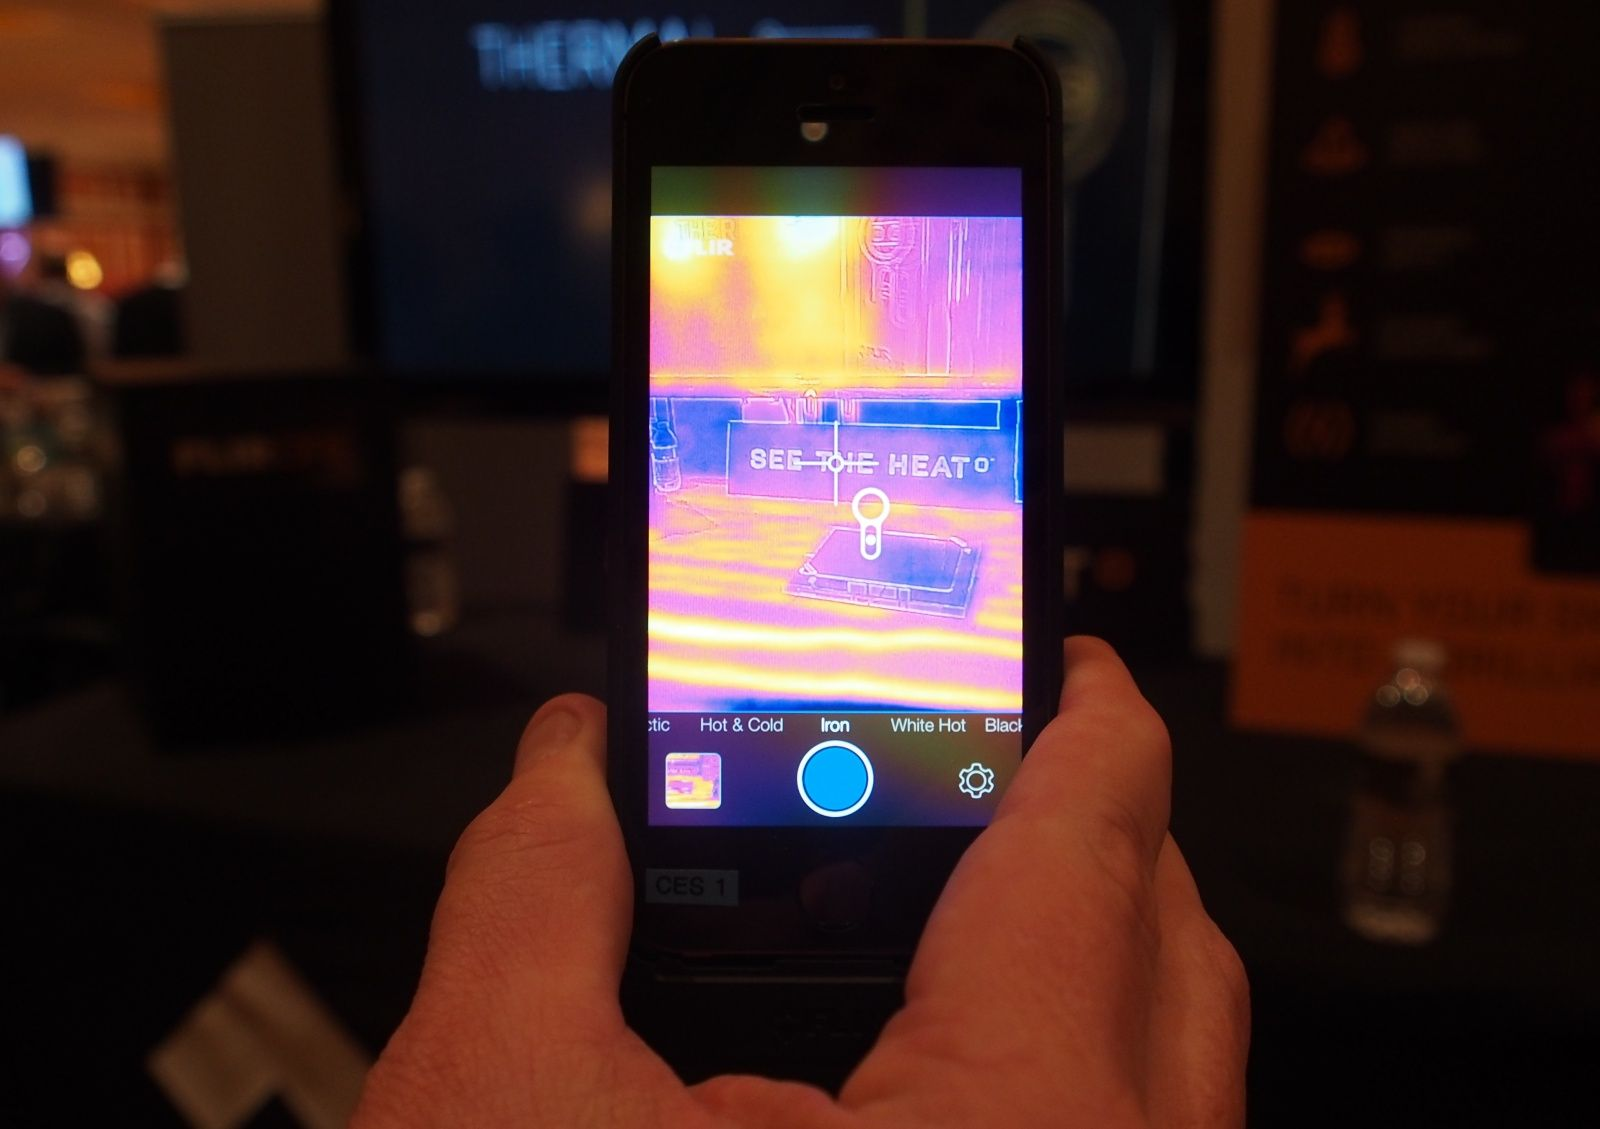 Turn Your iPhone Into A Thermal Imaging Camera